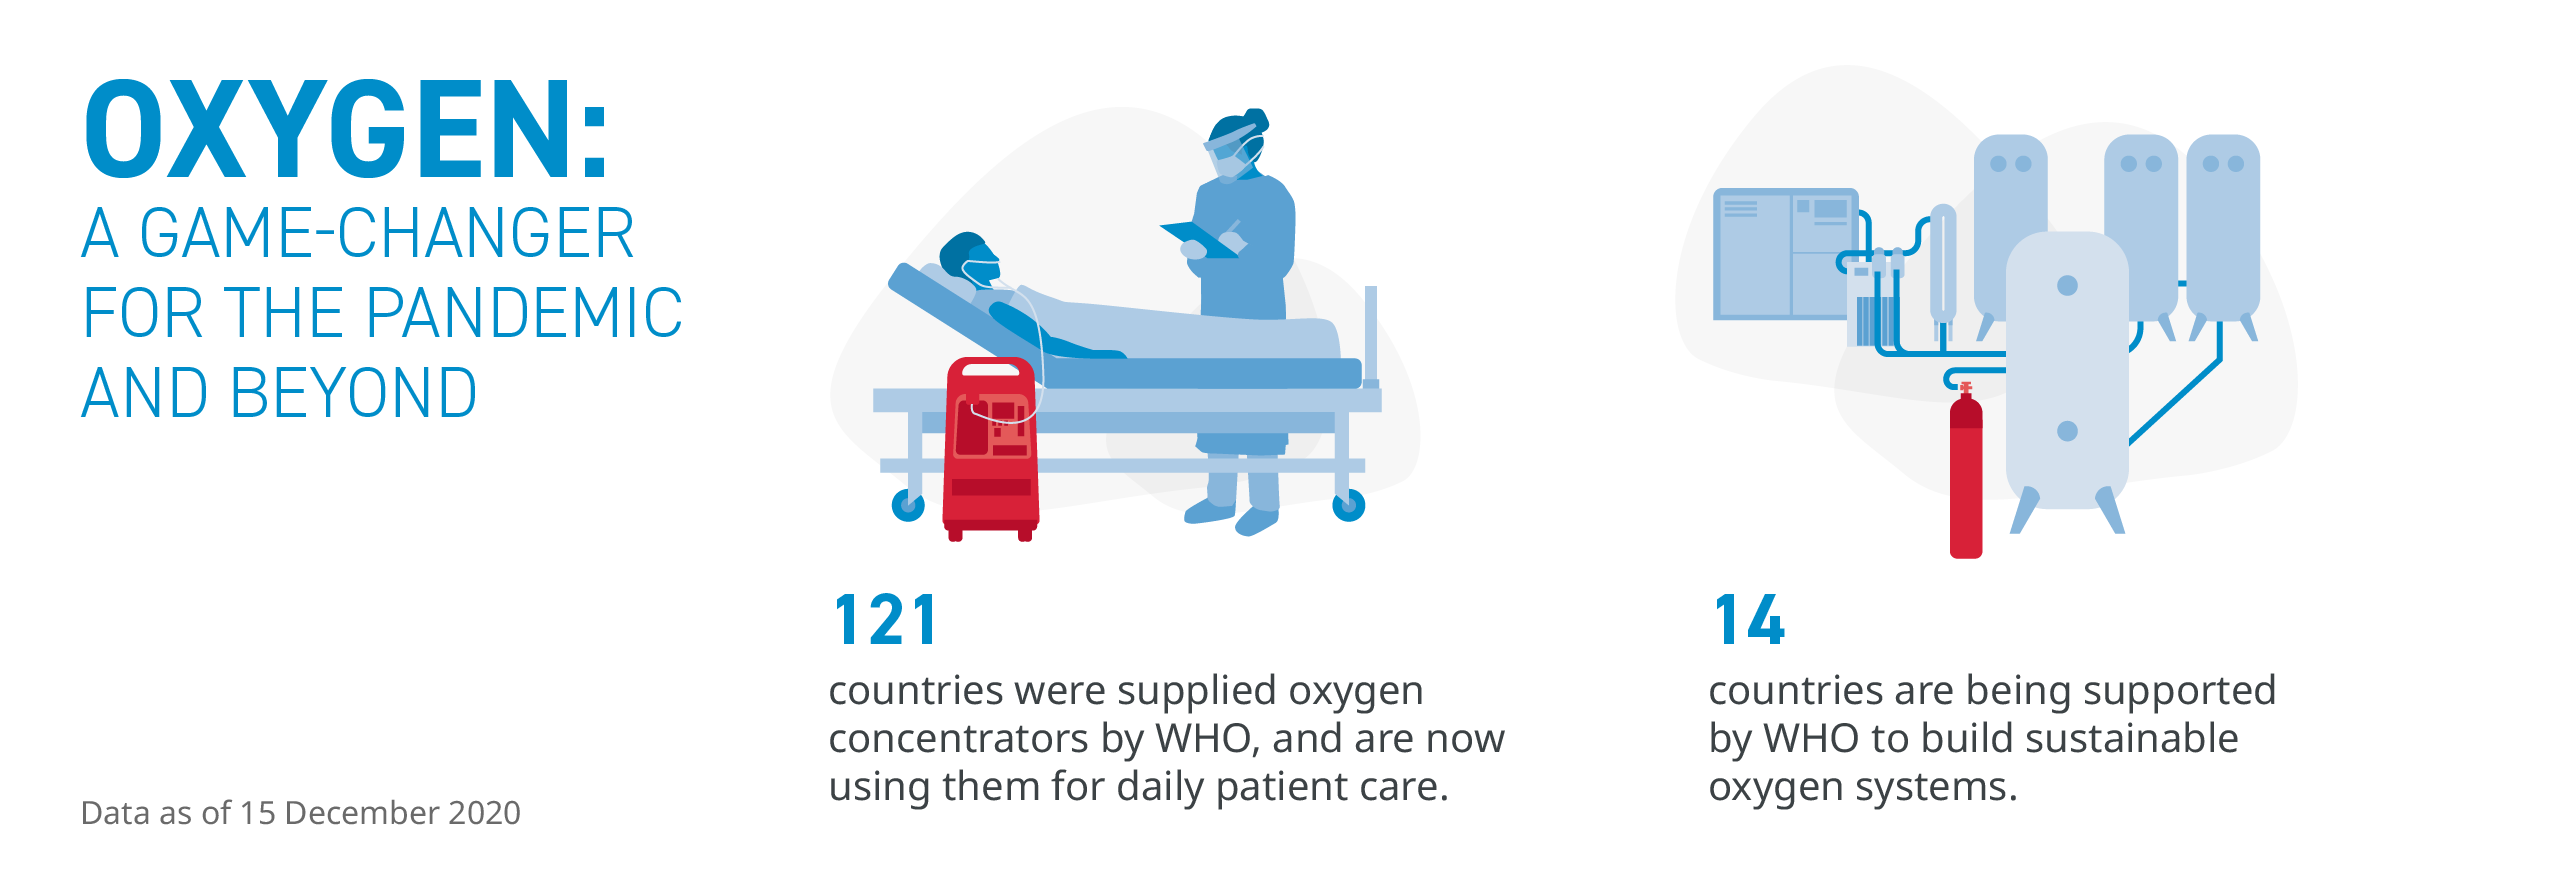 121 countries supplied oxygen concentrators by WHO, 14 countries working with WHO to build sustainable oxygen systems